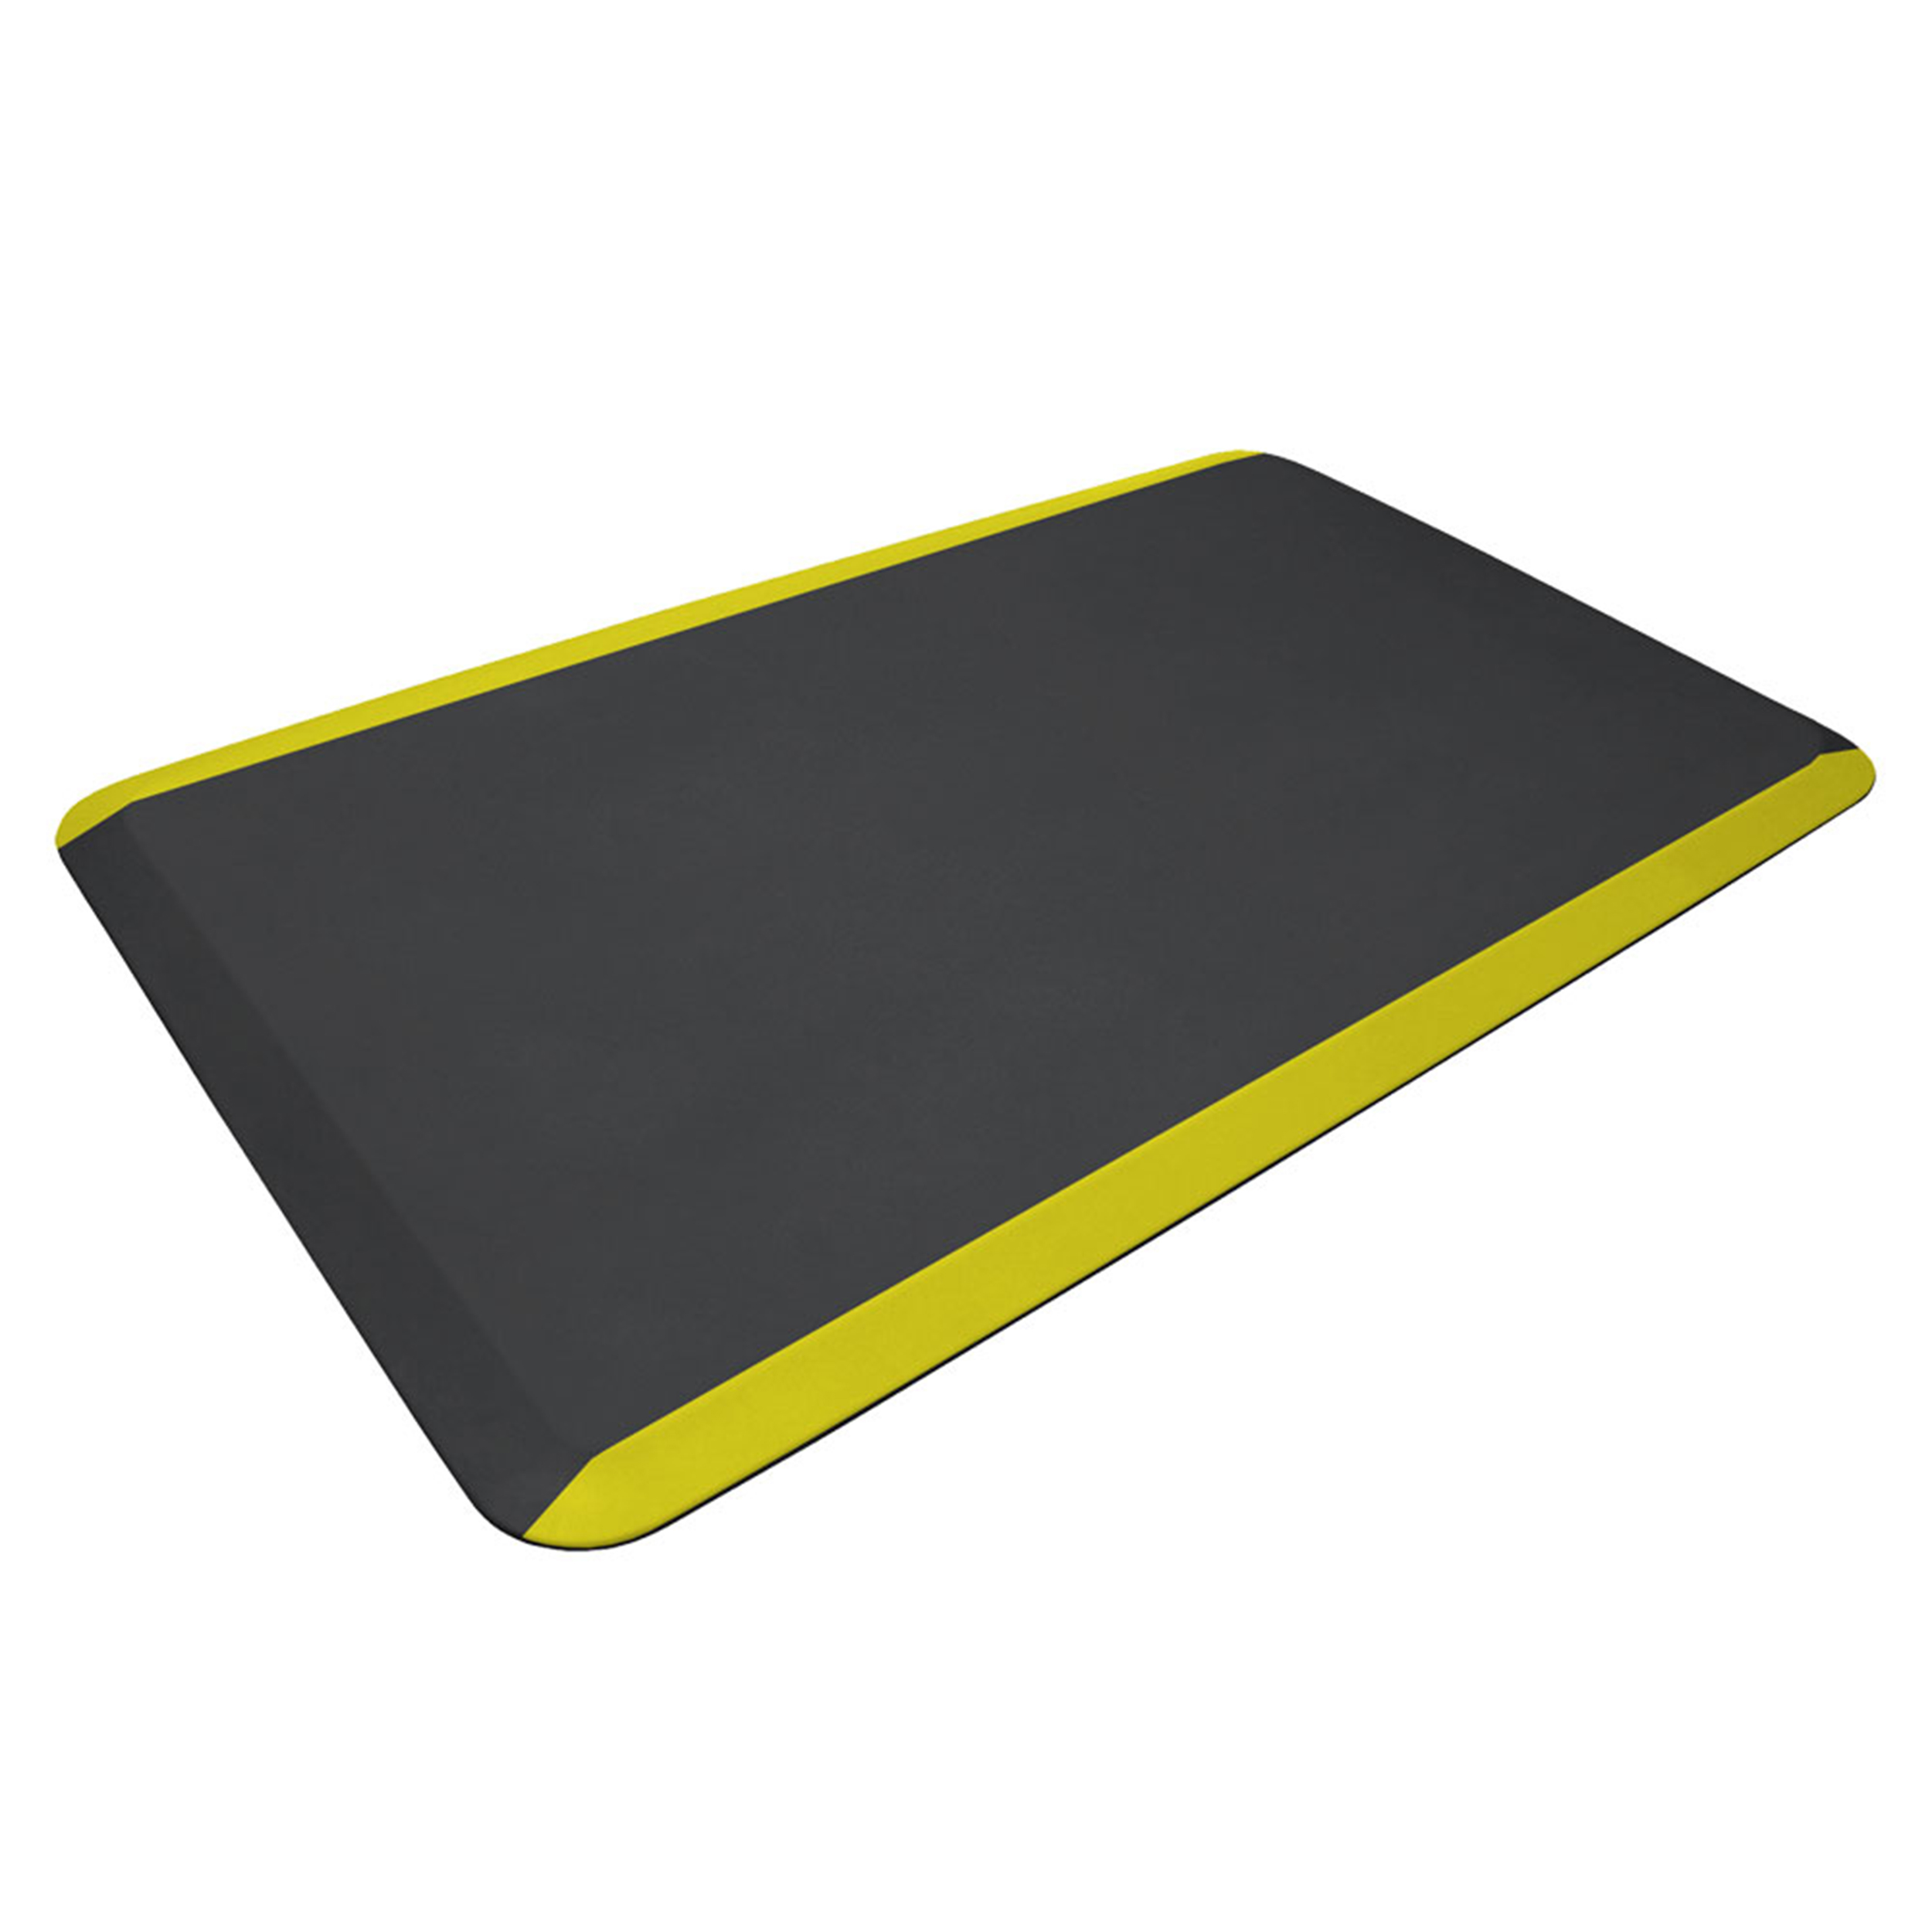 Eco-Pro Commercial Mat, Black with Yellow Safety Stripe, 24